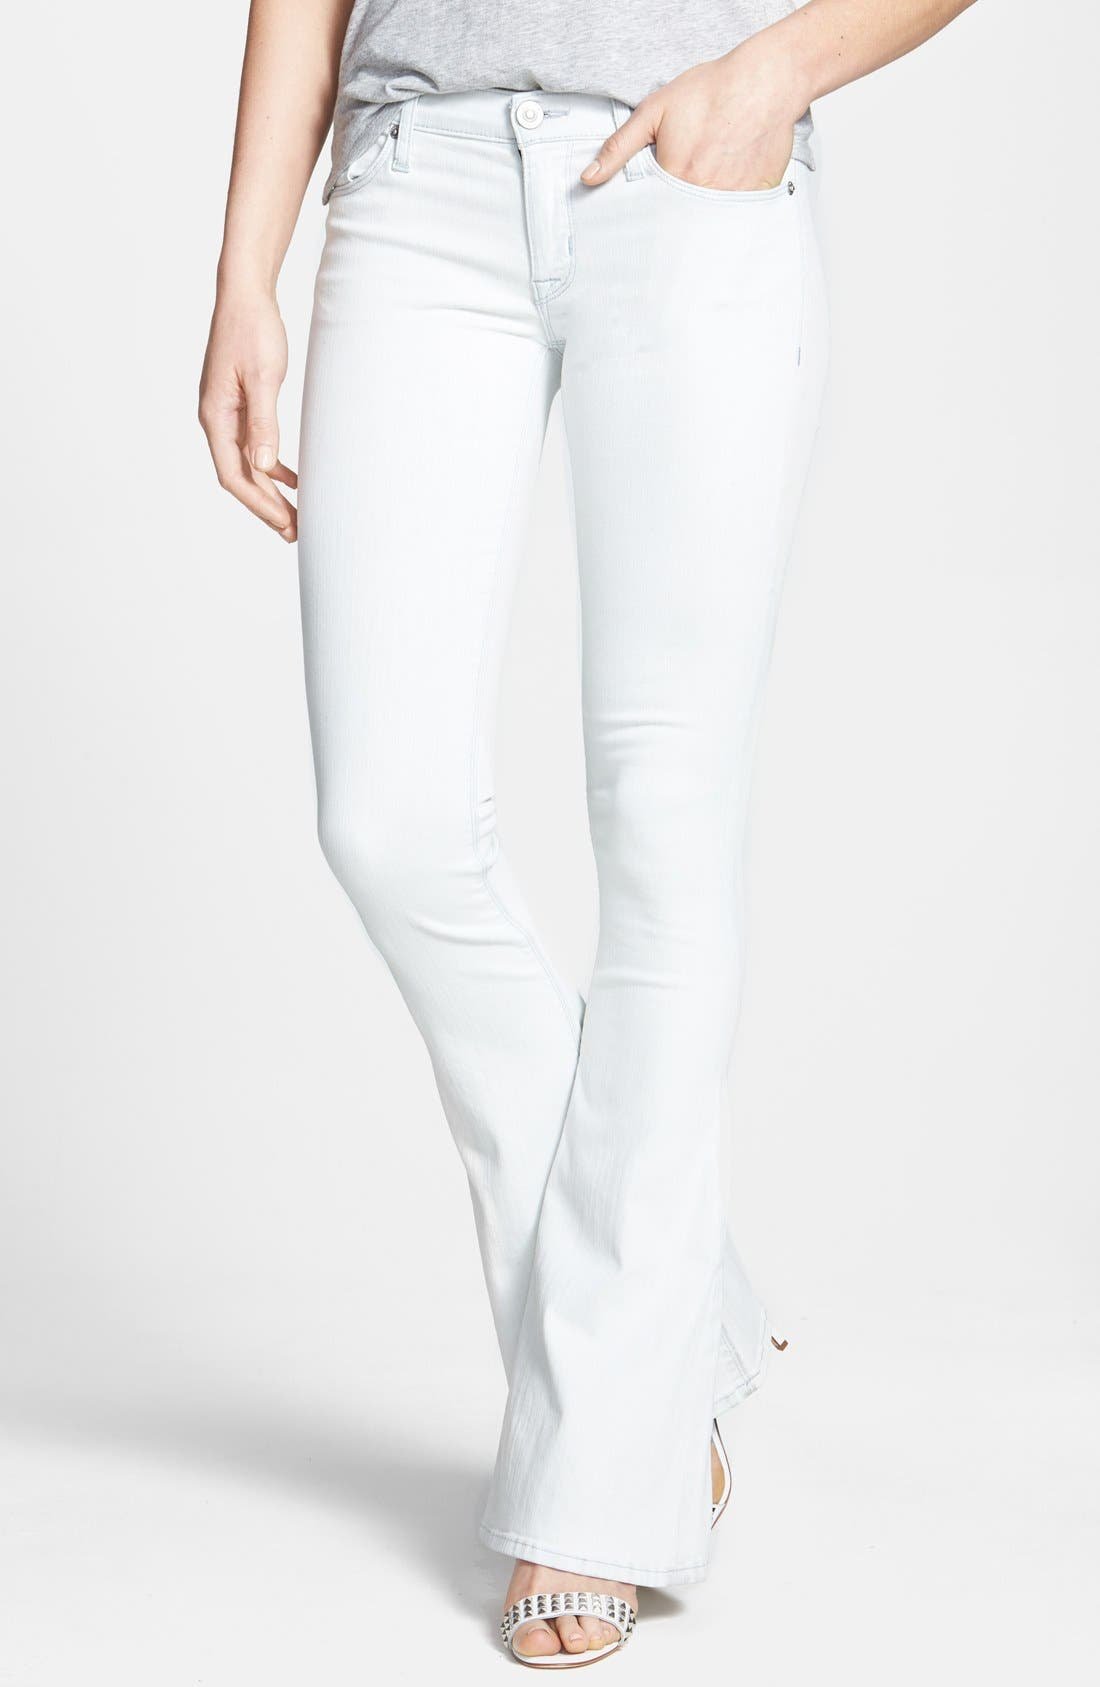 Main Image - Hudson Jeans 'Angel' Flared Jeans (Endless Summer)